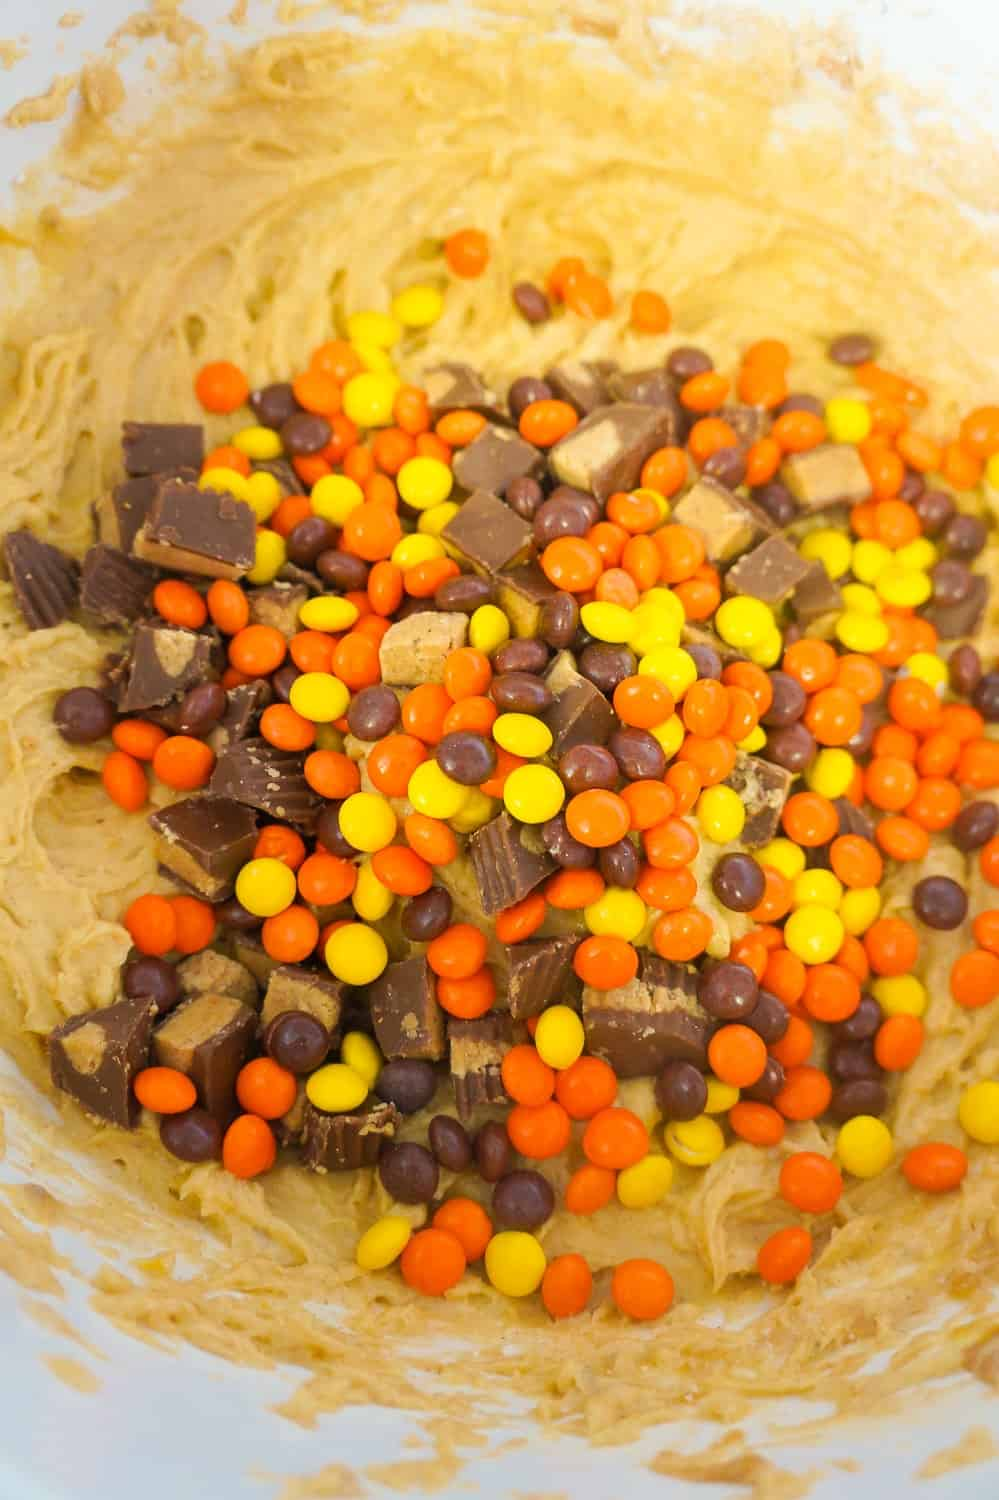 mini Reese's Pieces in peanut butter banana cake batter